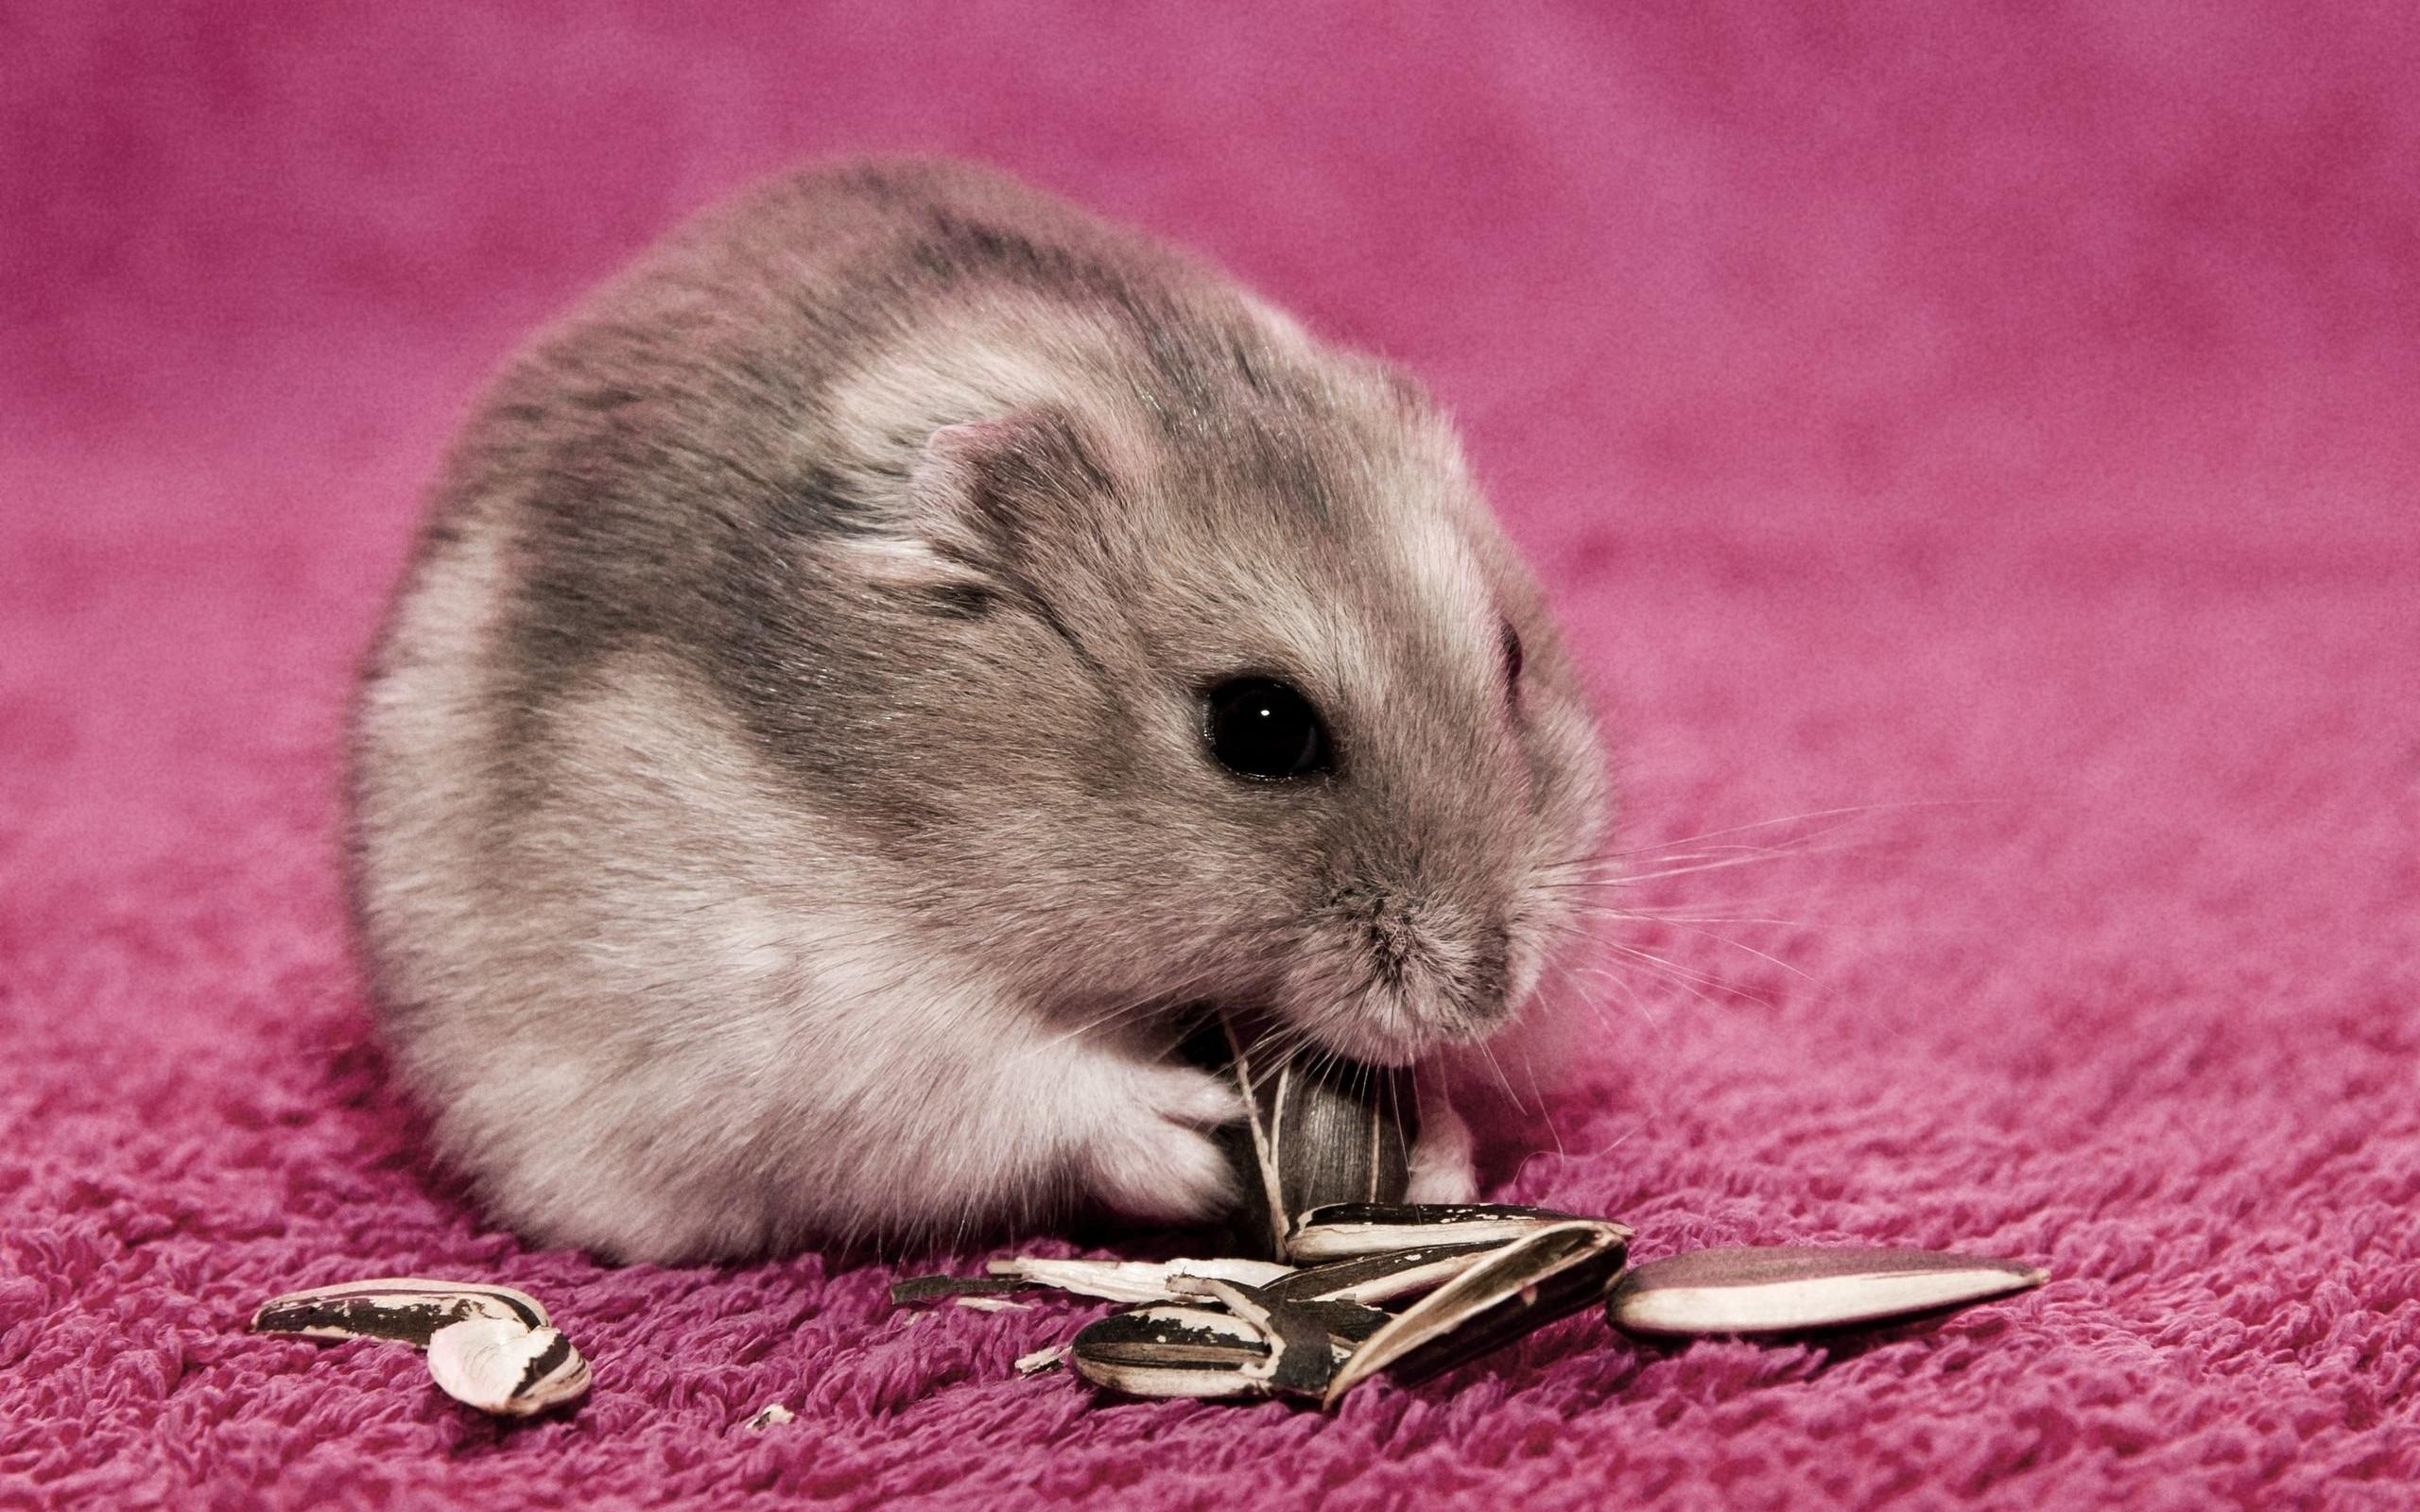 hamster   145793   High Quality and Resolution Wallpapers on 2560x1600